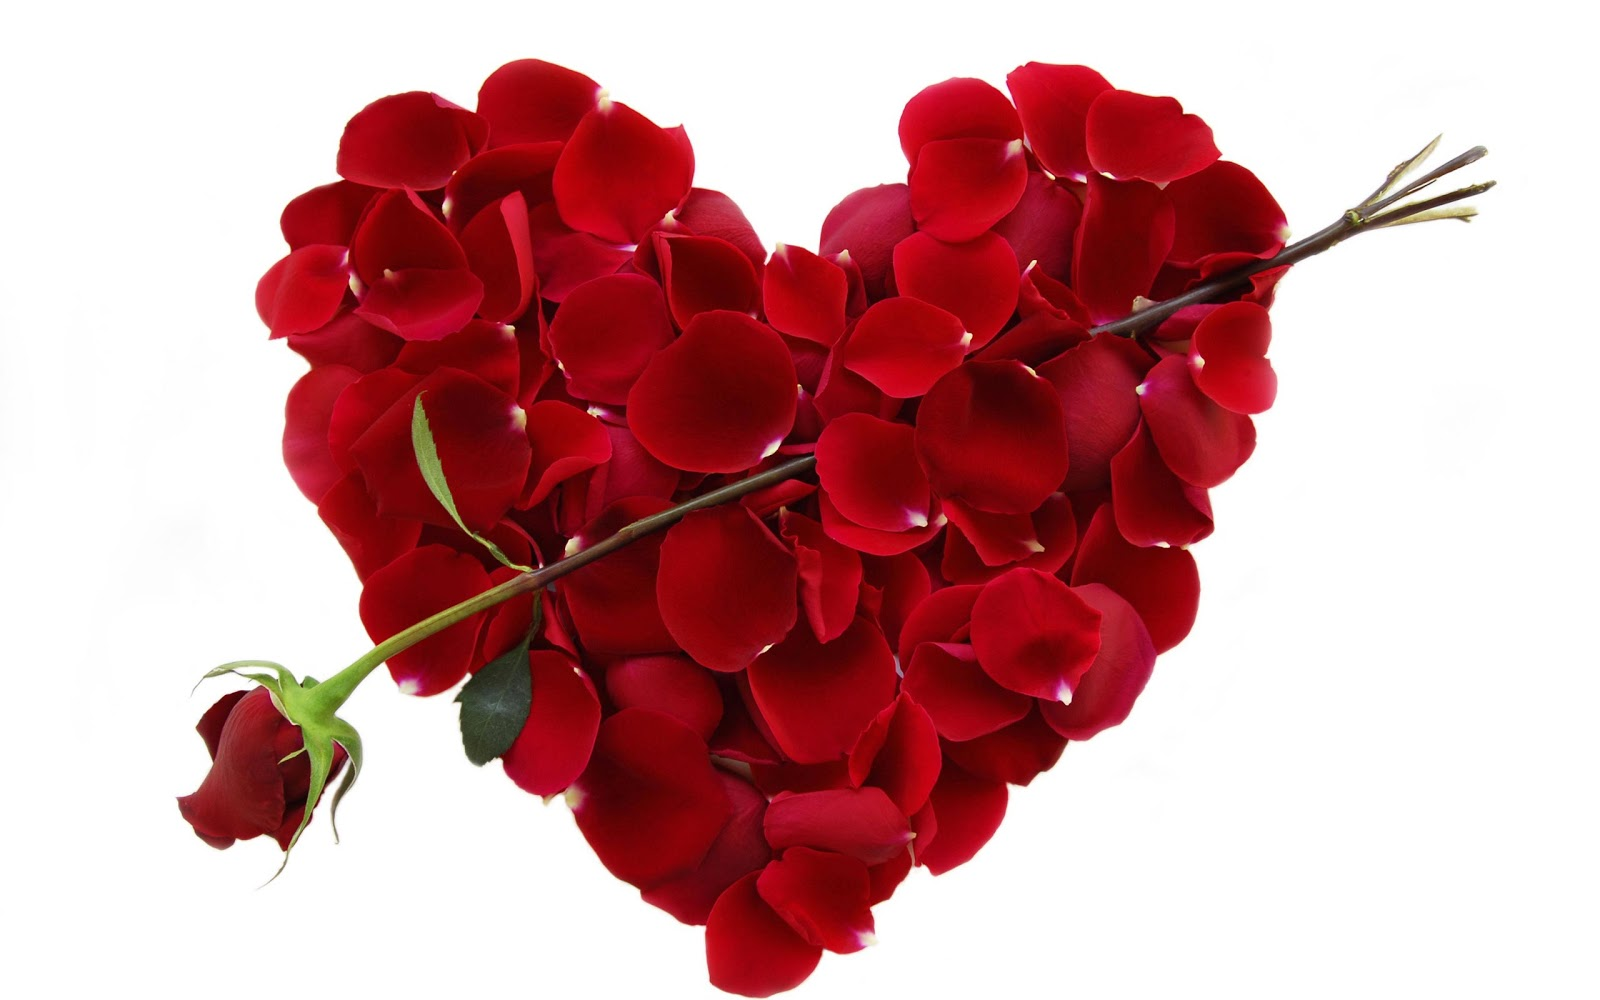 Uncovering the secret language of valentines day flowers the valentinesdayflowerheart izmirmasajfo Choice Image